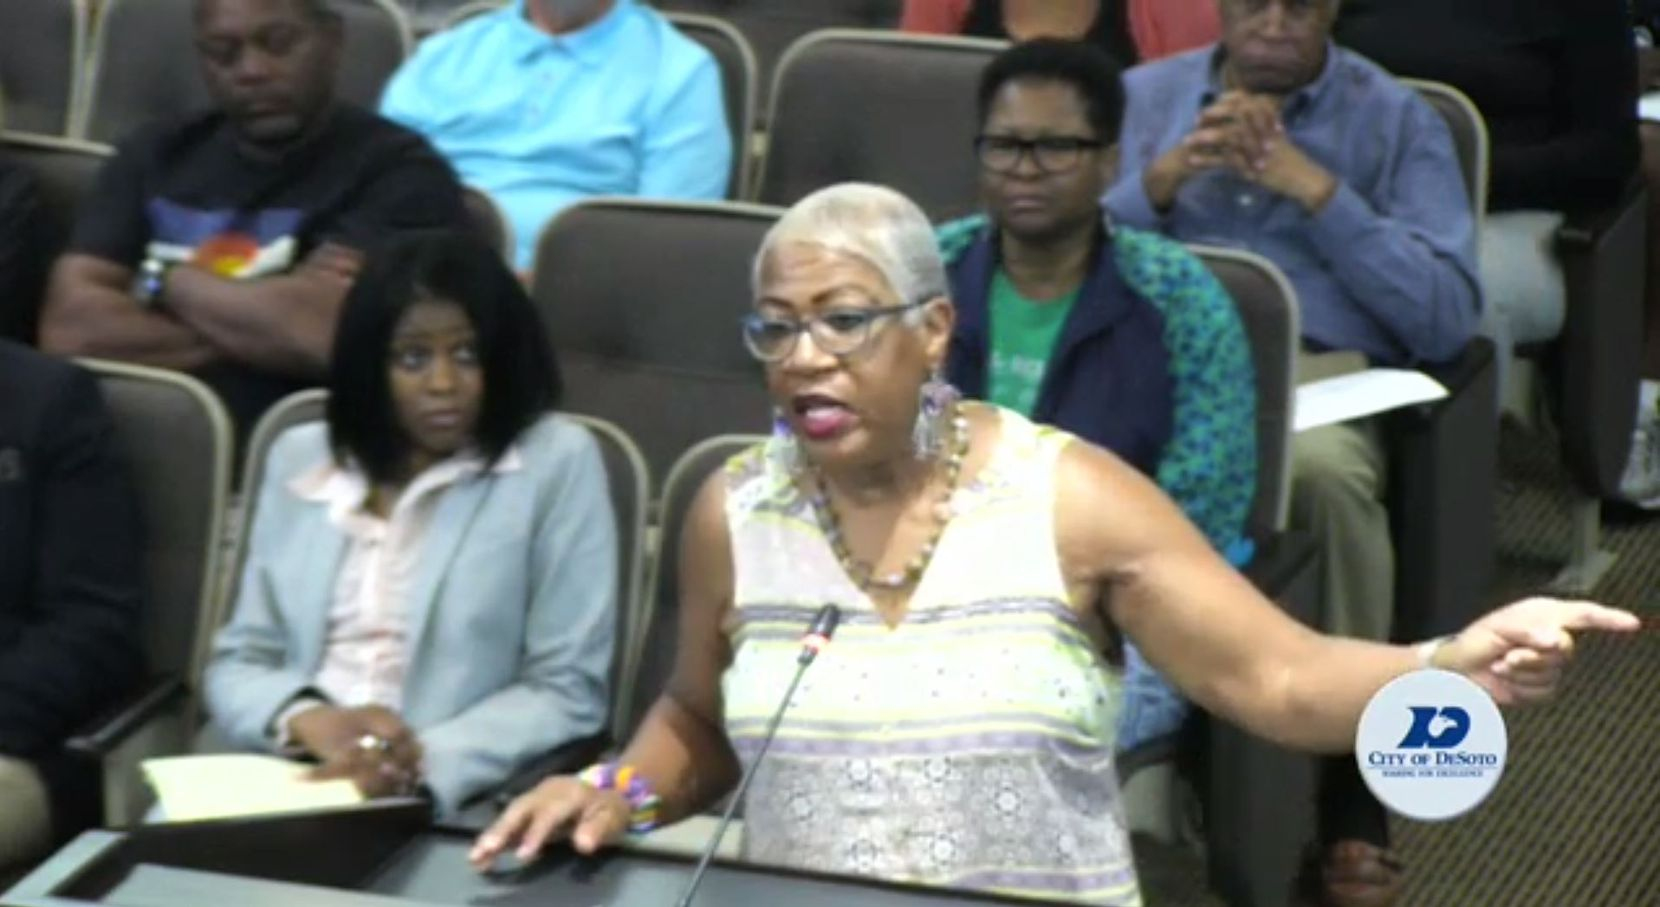 Precious Rita Davis asked the council to bring in an outside law enforcement to investigate the crime.